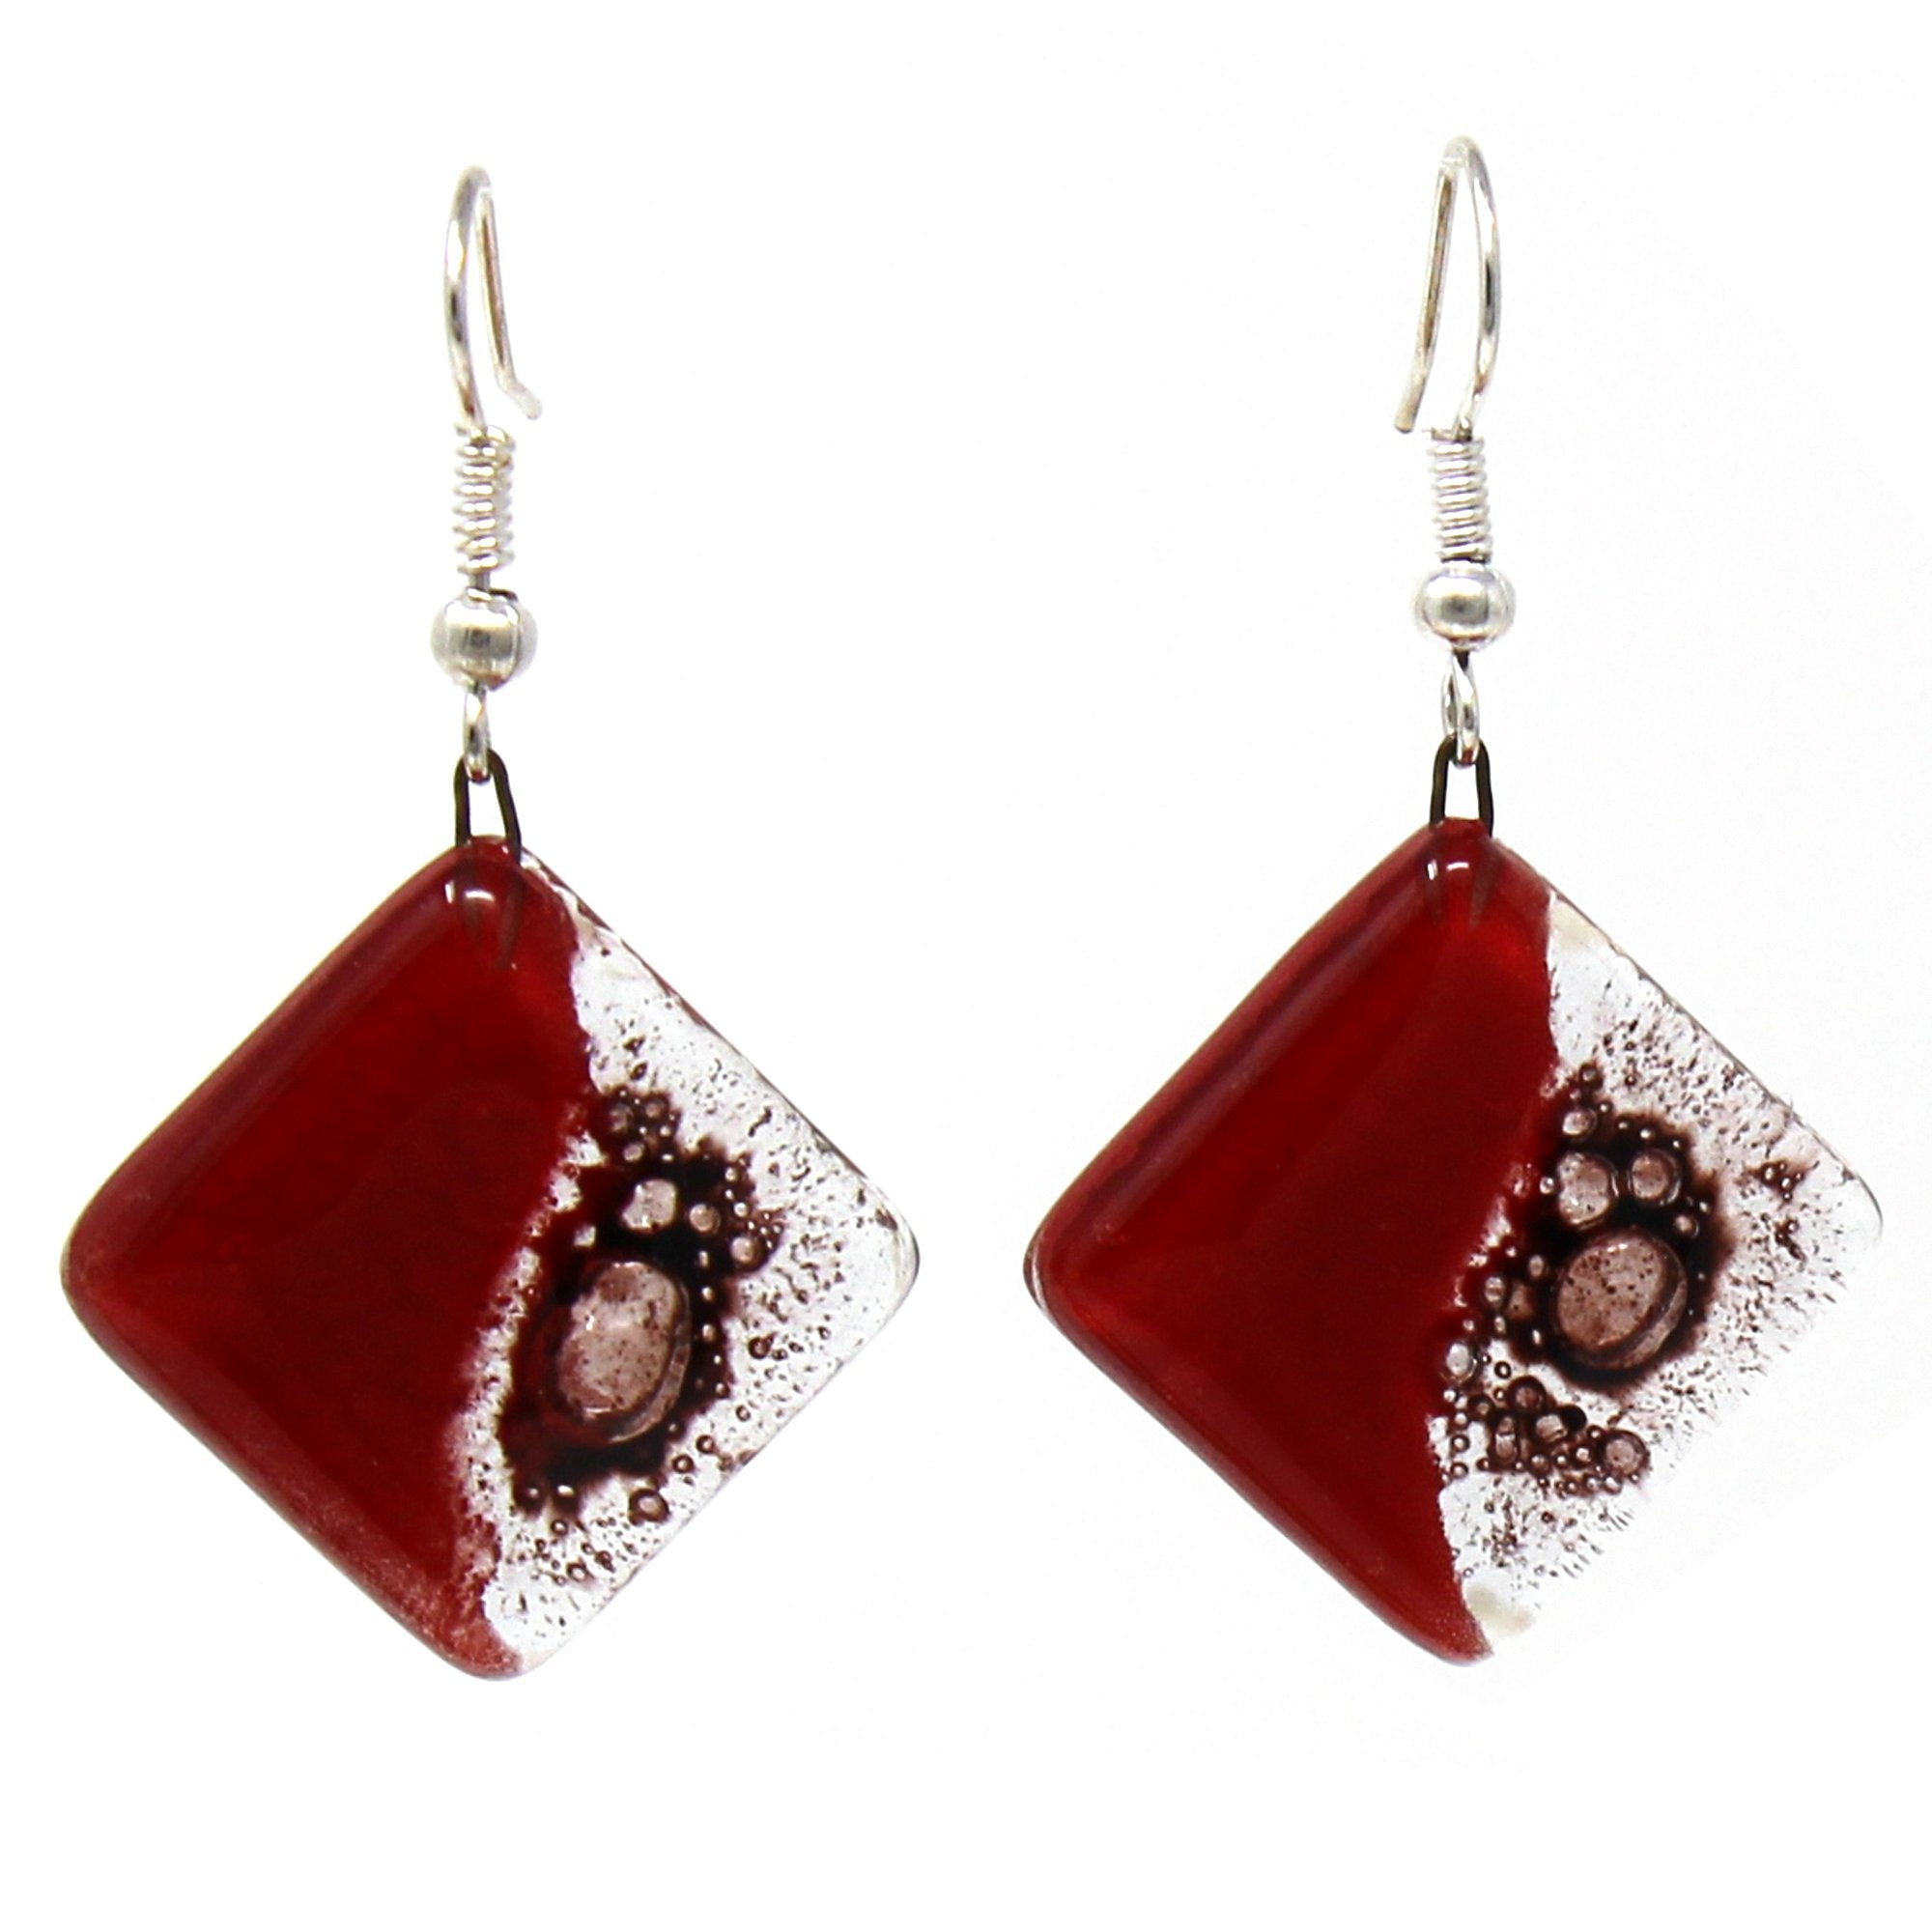 Rhombus Glass Earrings, Posh Plum  - Tili Glass